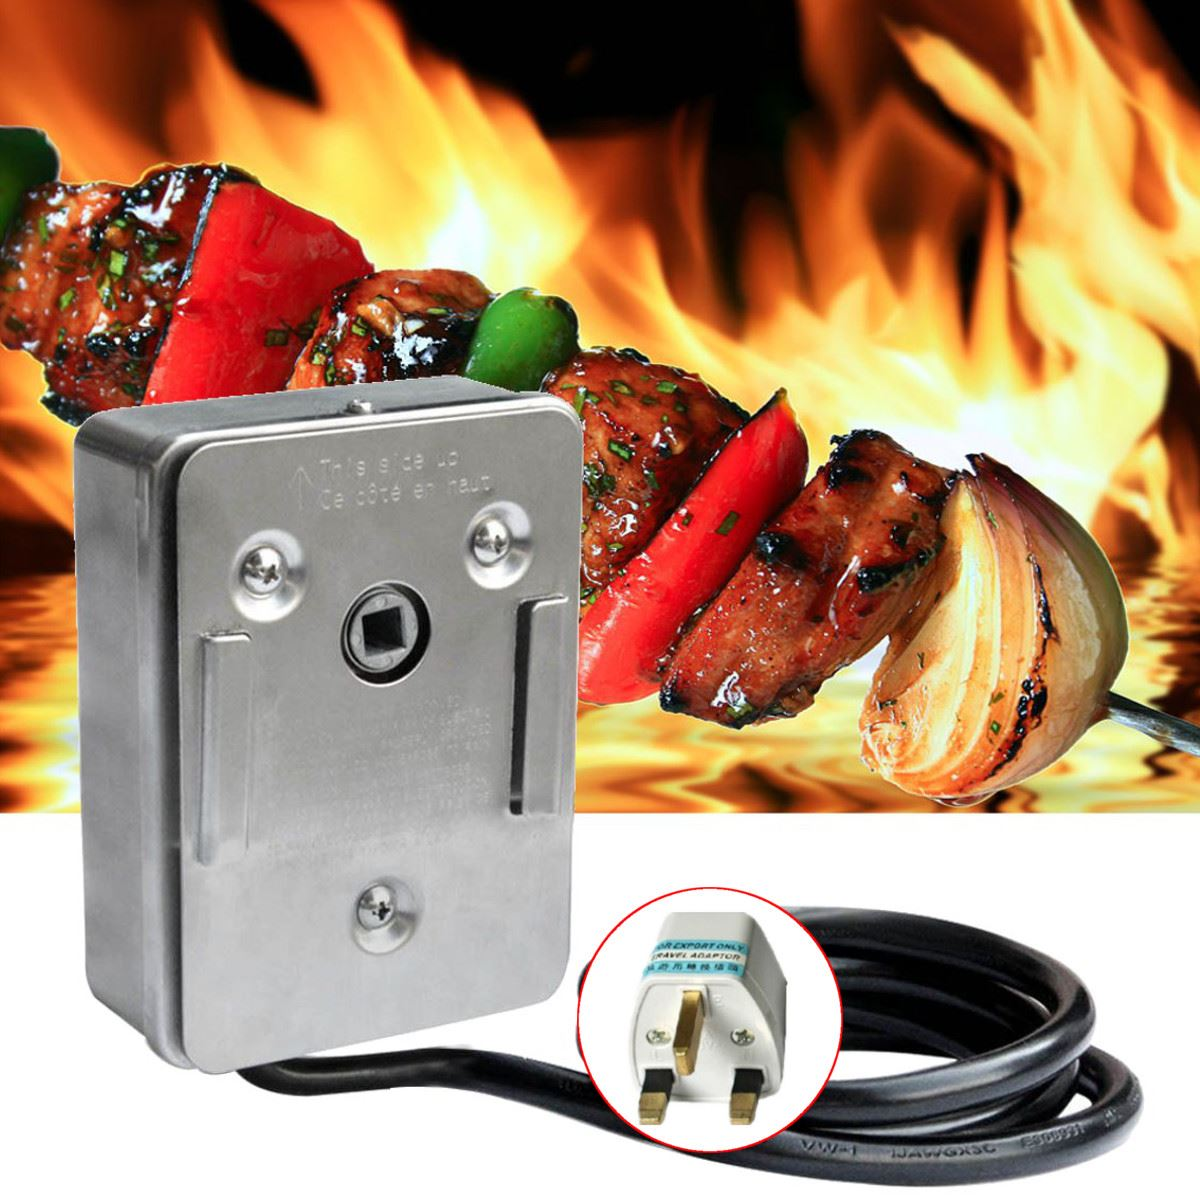 220V Onlyfire Universal Grill Electric Replacement BBQ Grill Heavy Duty Stainless Steel Rotisserie Motor Electric Motor дырокол deli heavy duty e0130